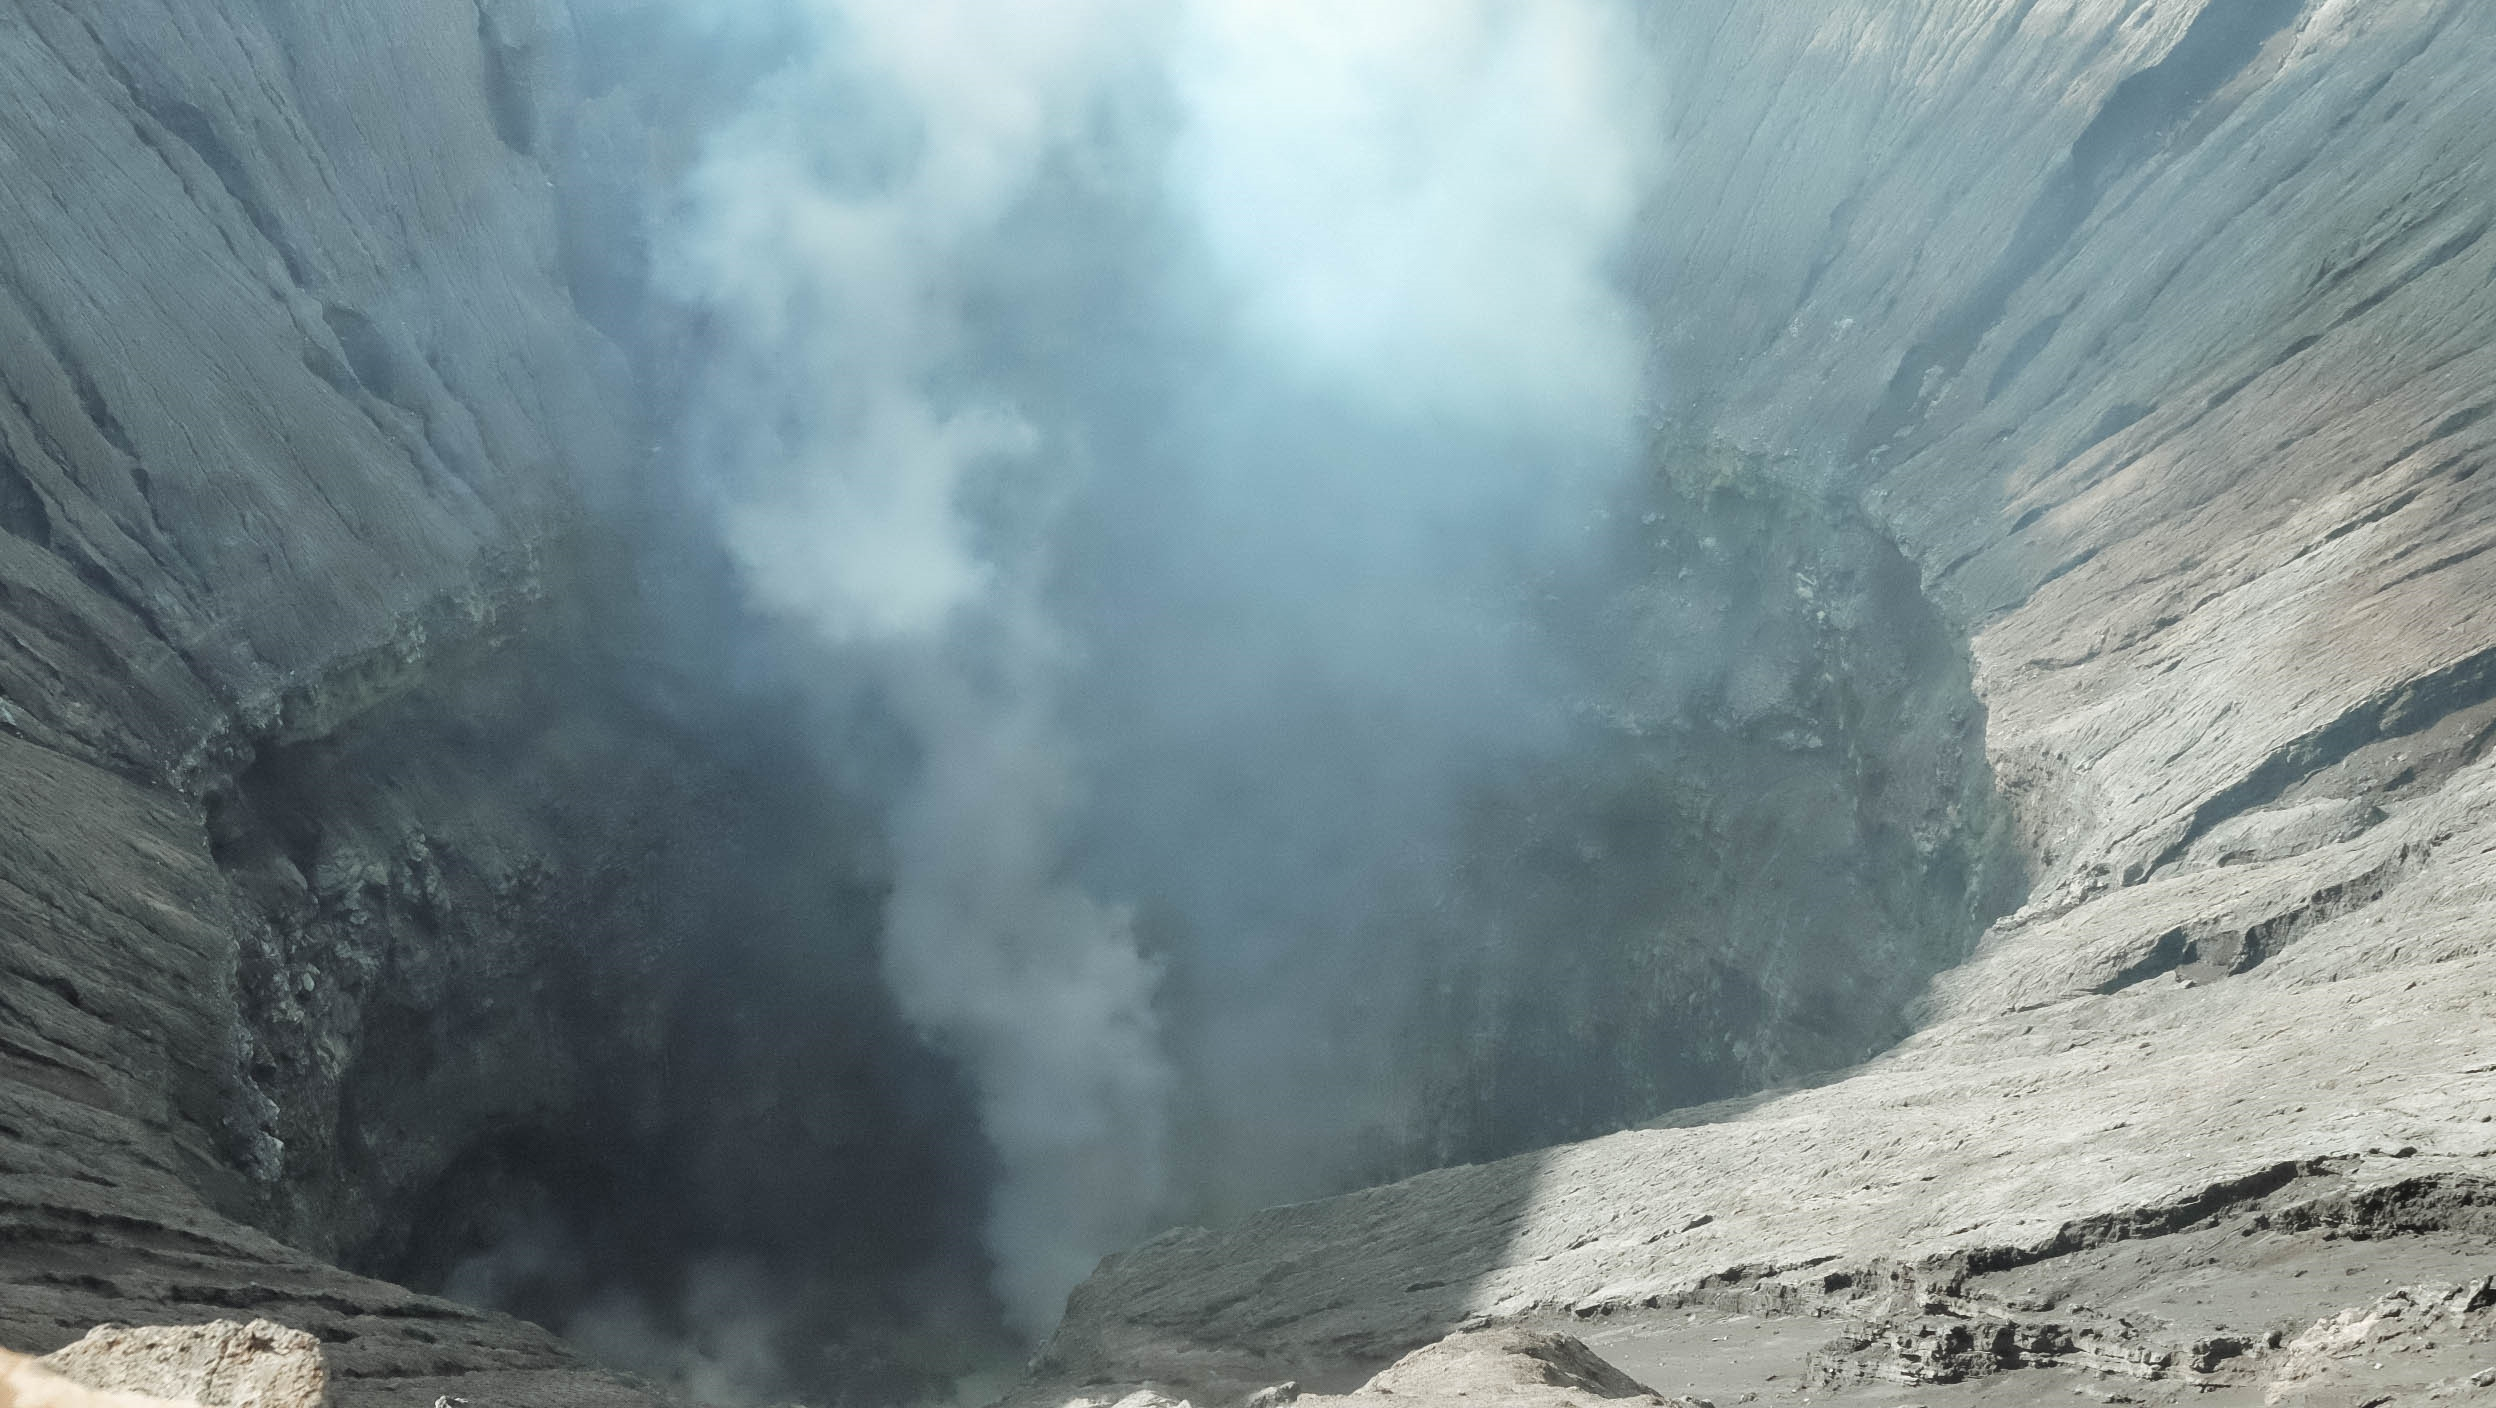 Den Indonesia, cham chan toi mieng nui lua Bromo hinh anh 21